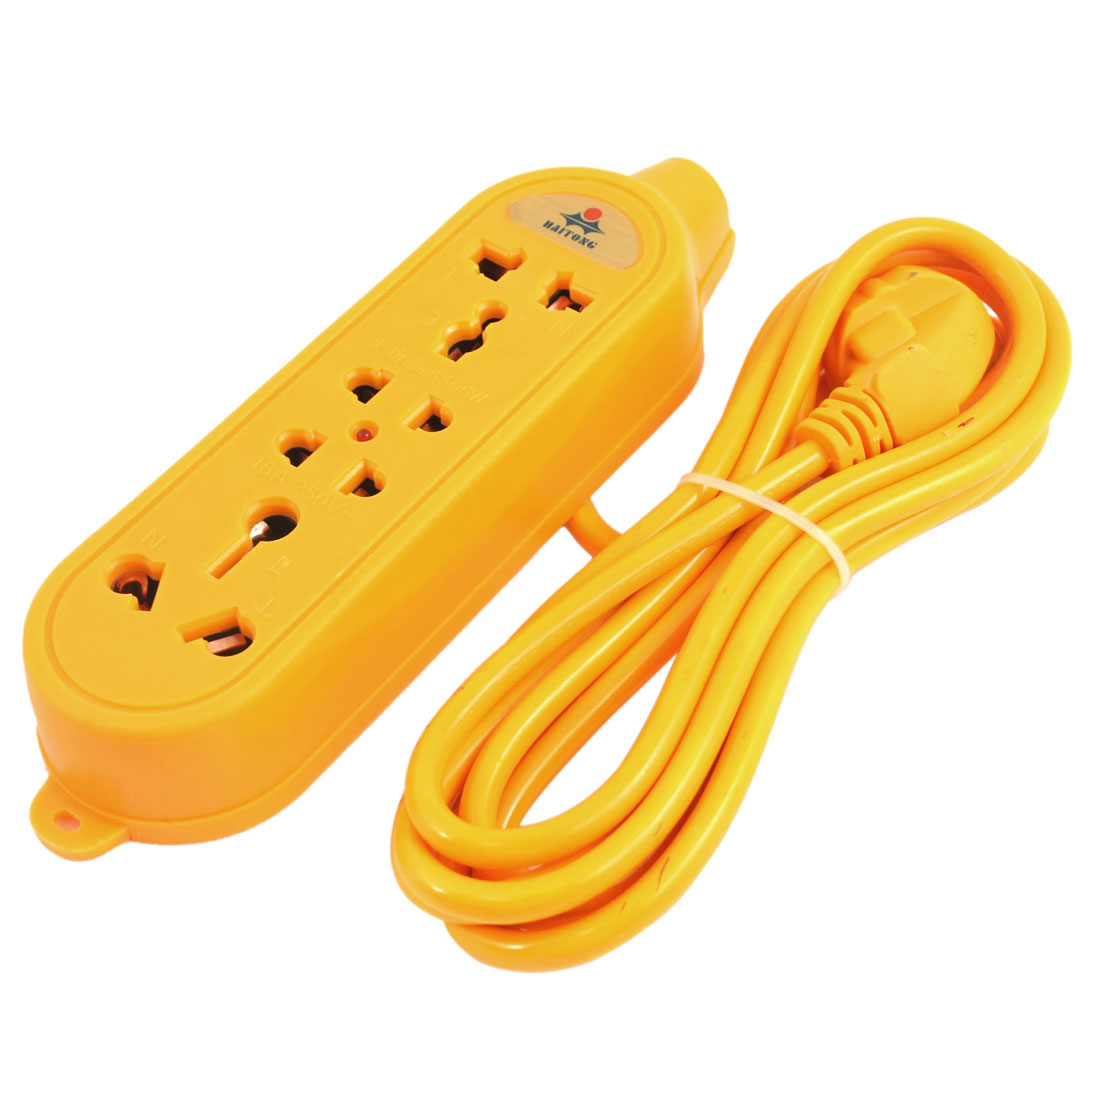 AC 250V 16A 5000W 3 Meter Cable 4 Outlet Power Strip Bar Adapter AU Plug